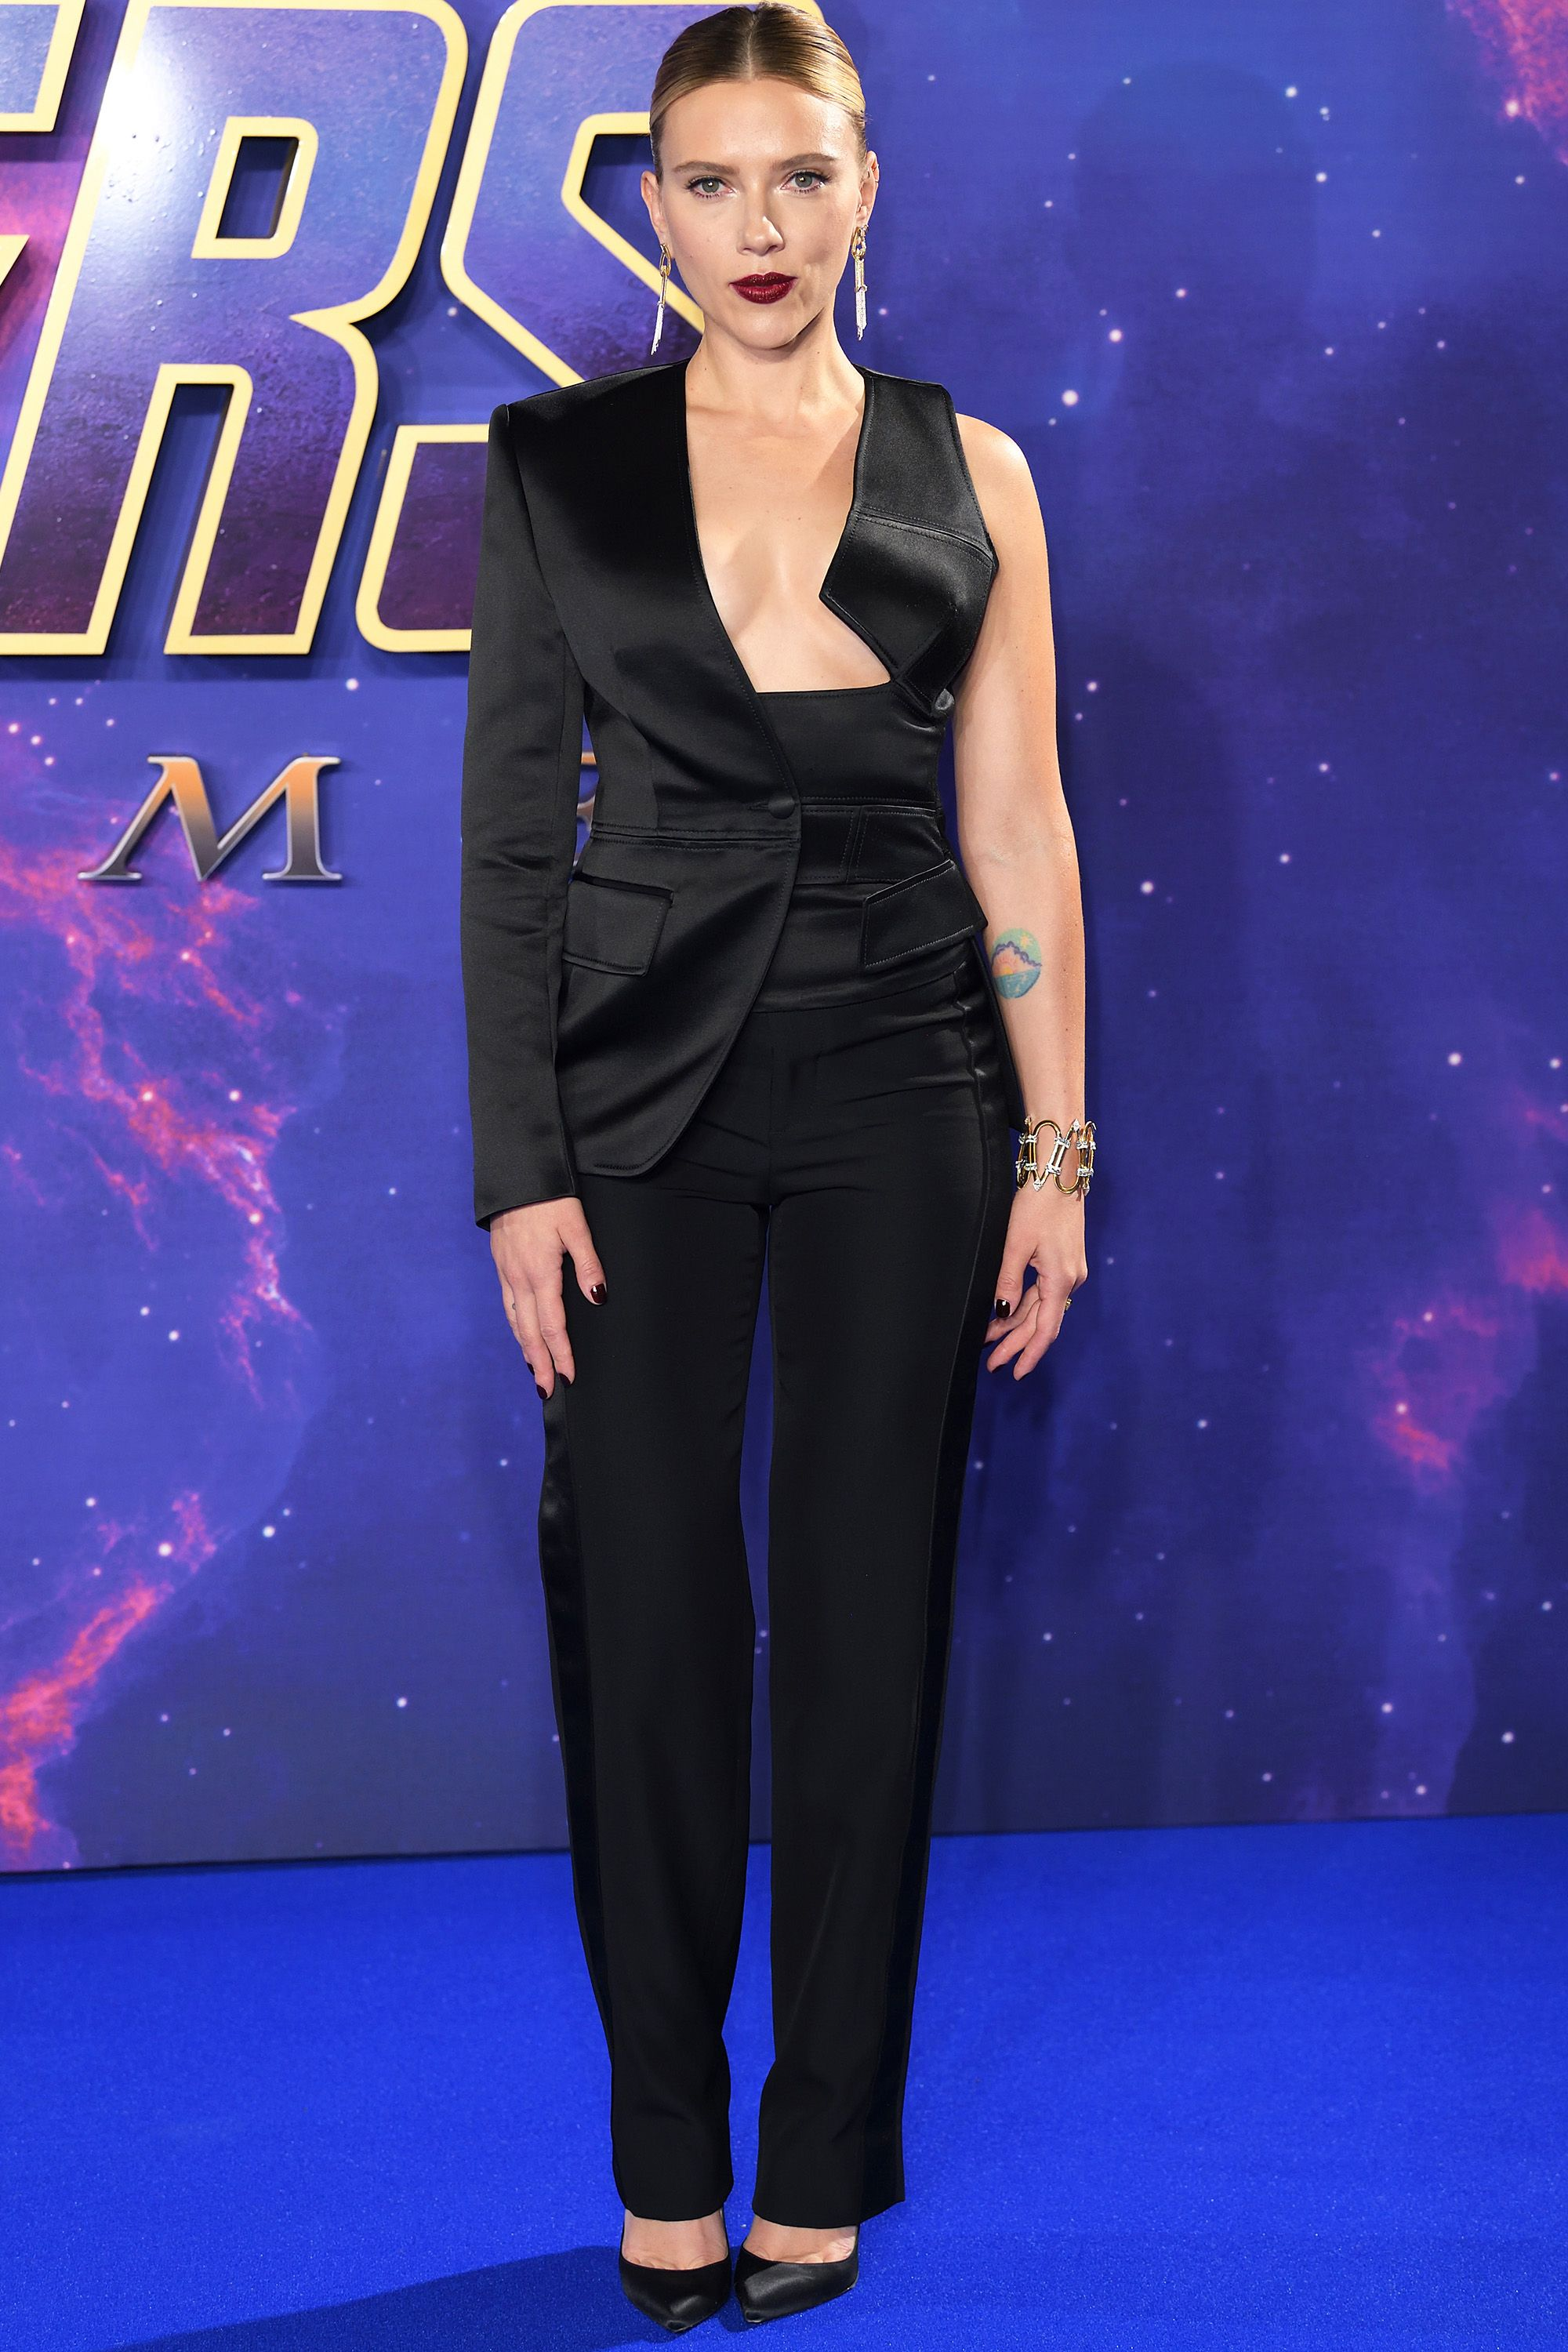 Who: Scarlett Johansson When: Tom Ford Wearing: April 10, 2019 Why: Business met pleasure at the Avengers Endgame event in London, England. Scarlett Johansson's perfectly tailored suit is everything.